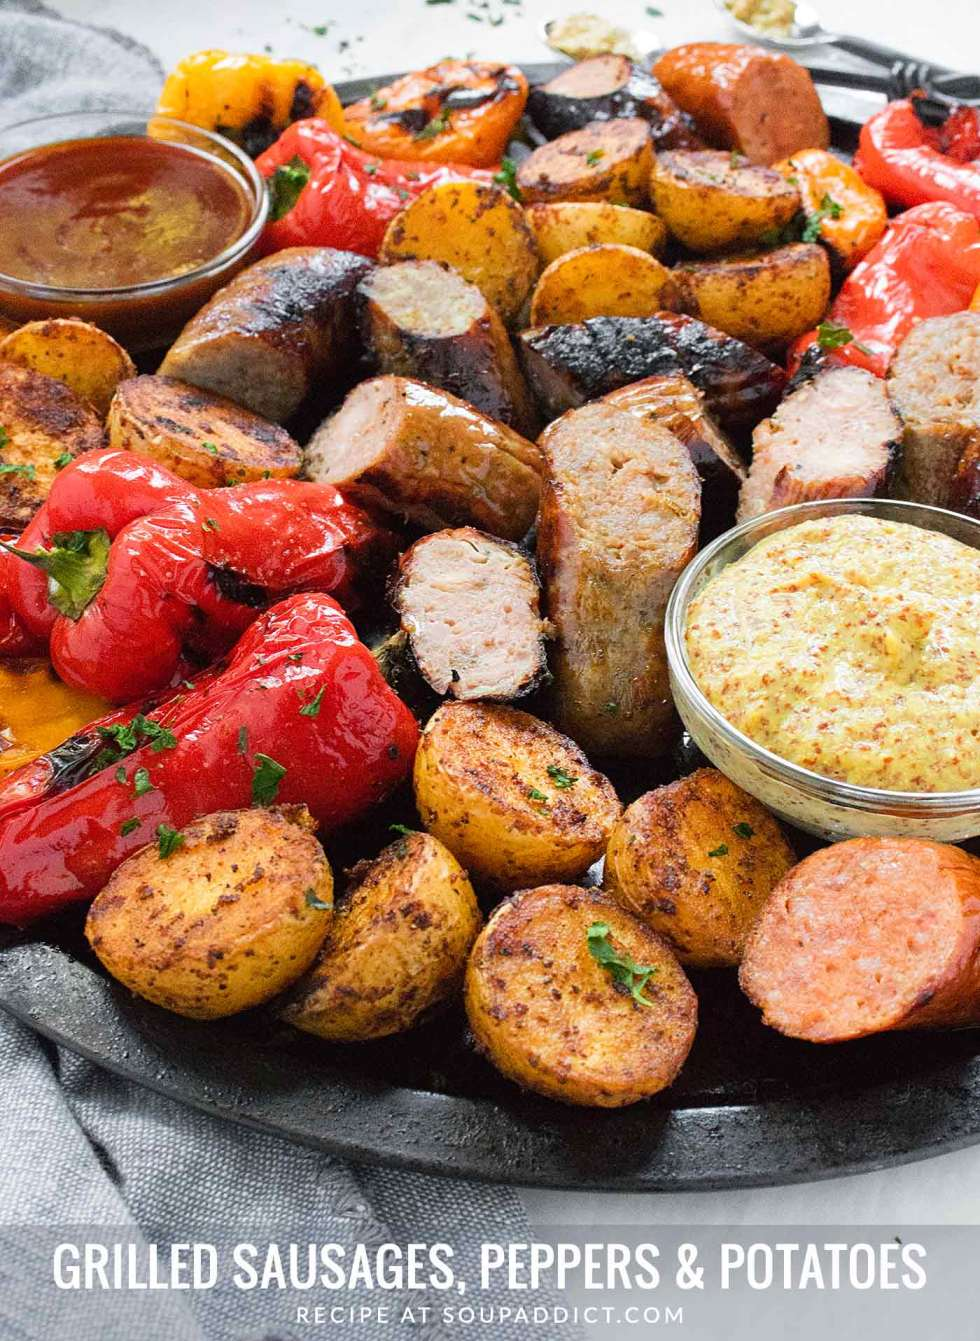 Grilled Sausages, Peppers & Potatoes on a platter with dipping sauces